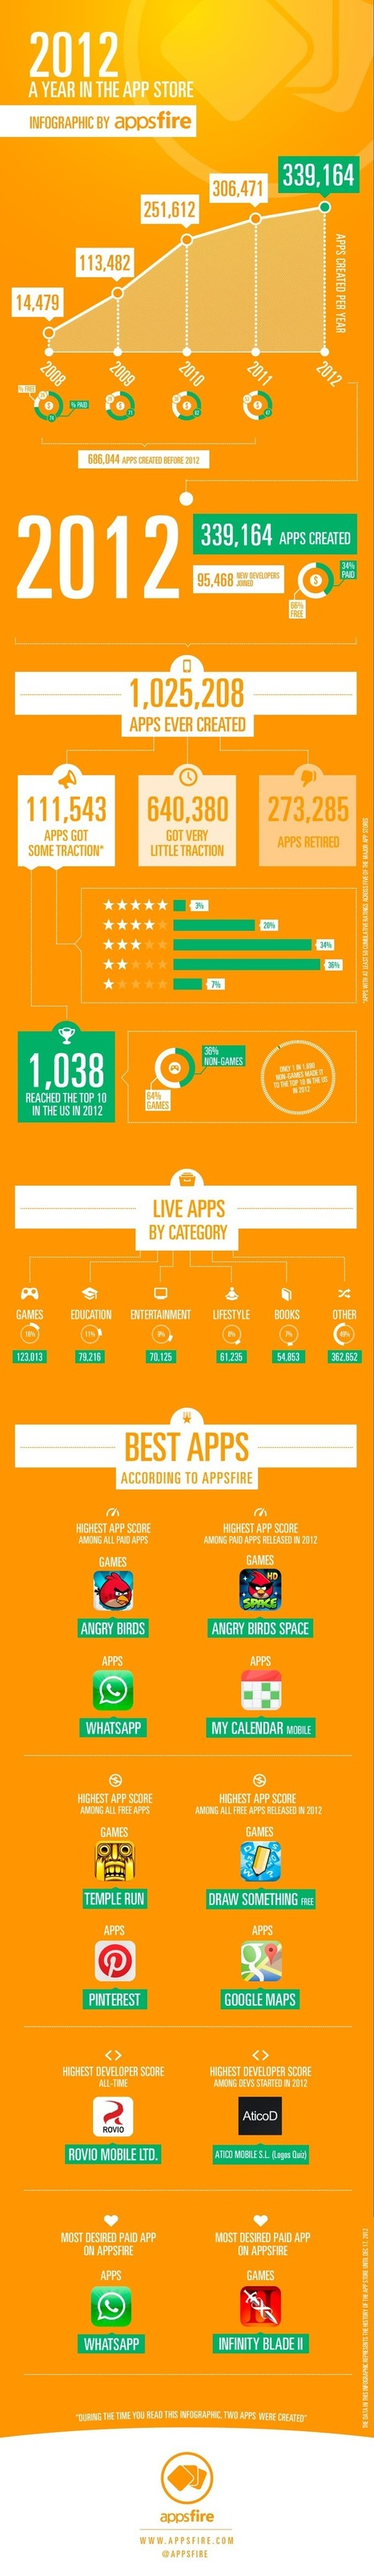 2012: A Year in App Store (Infographic) | Social Media scoops by Rick Maresch | Scoop.it